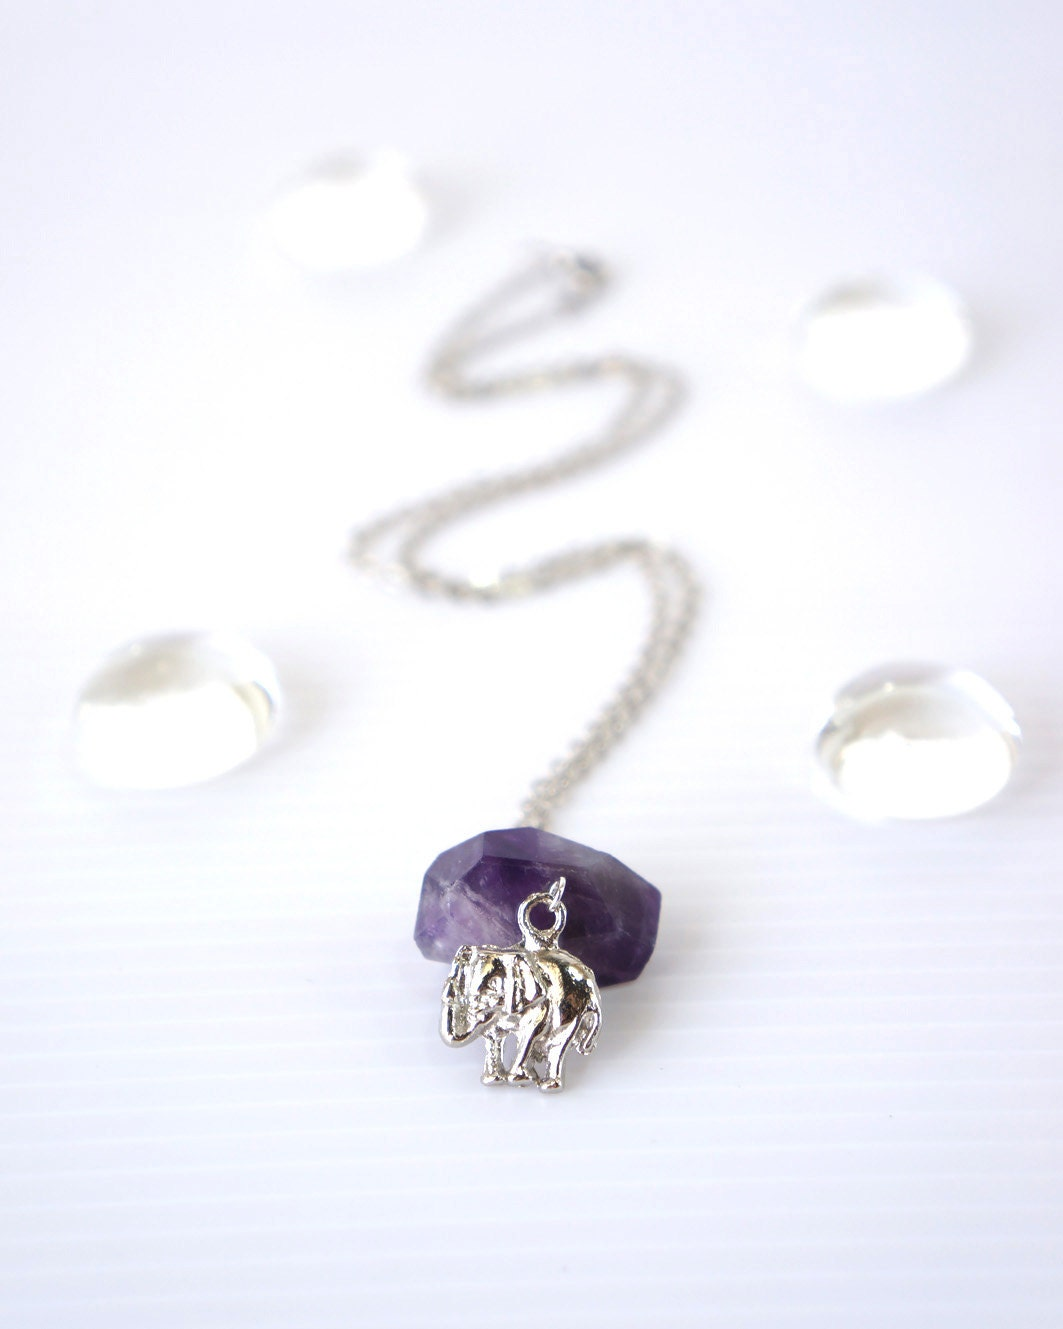 Little Elephant Charm Necklace, Purple Amethyst Faceted Stone, Cute Gift For Little Girl, Girls Jewelry